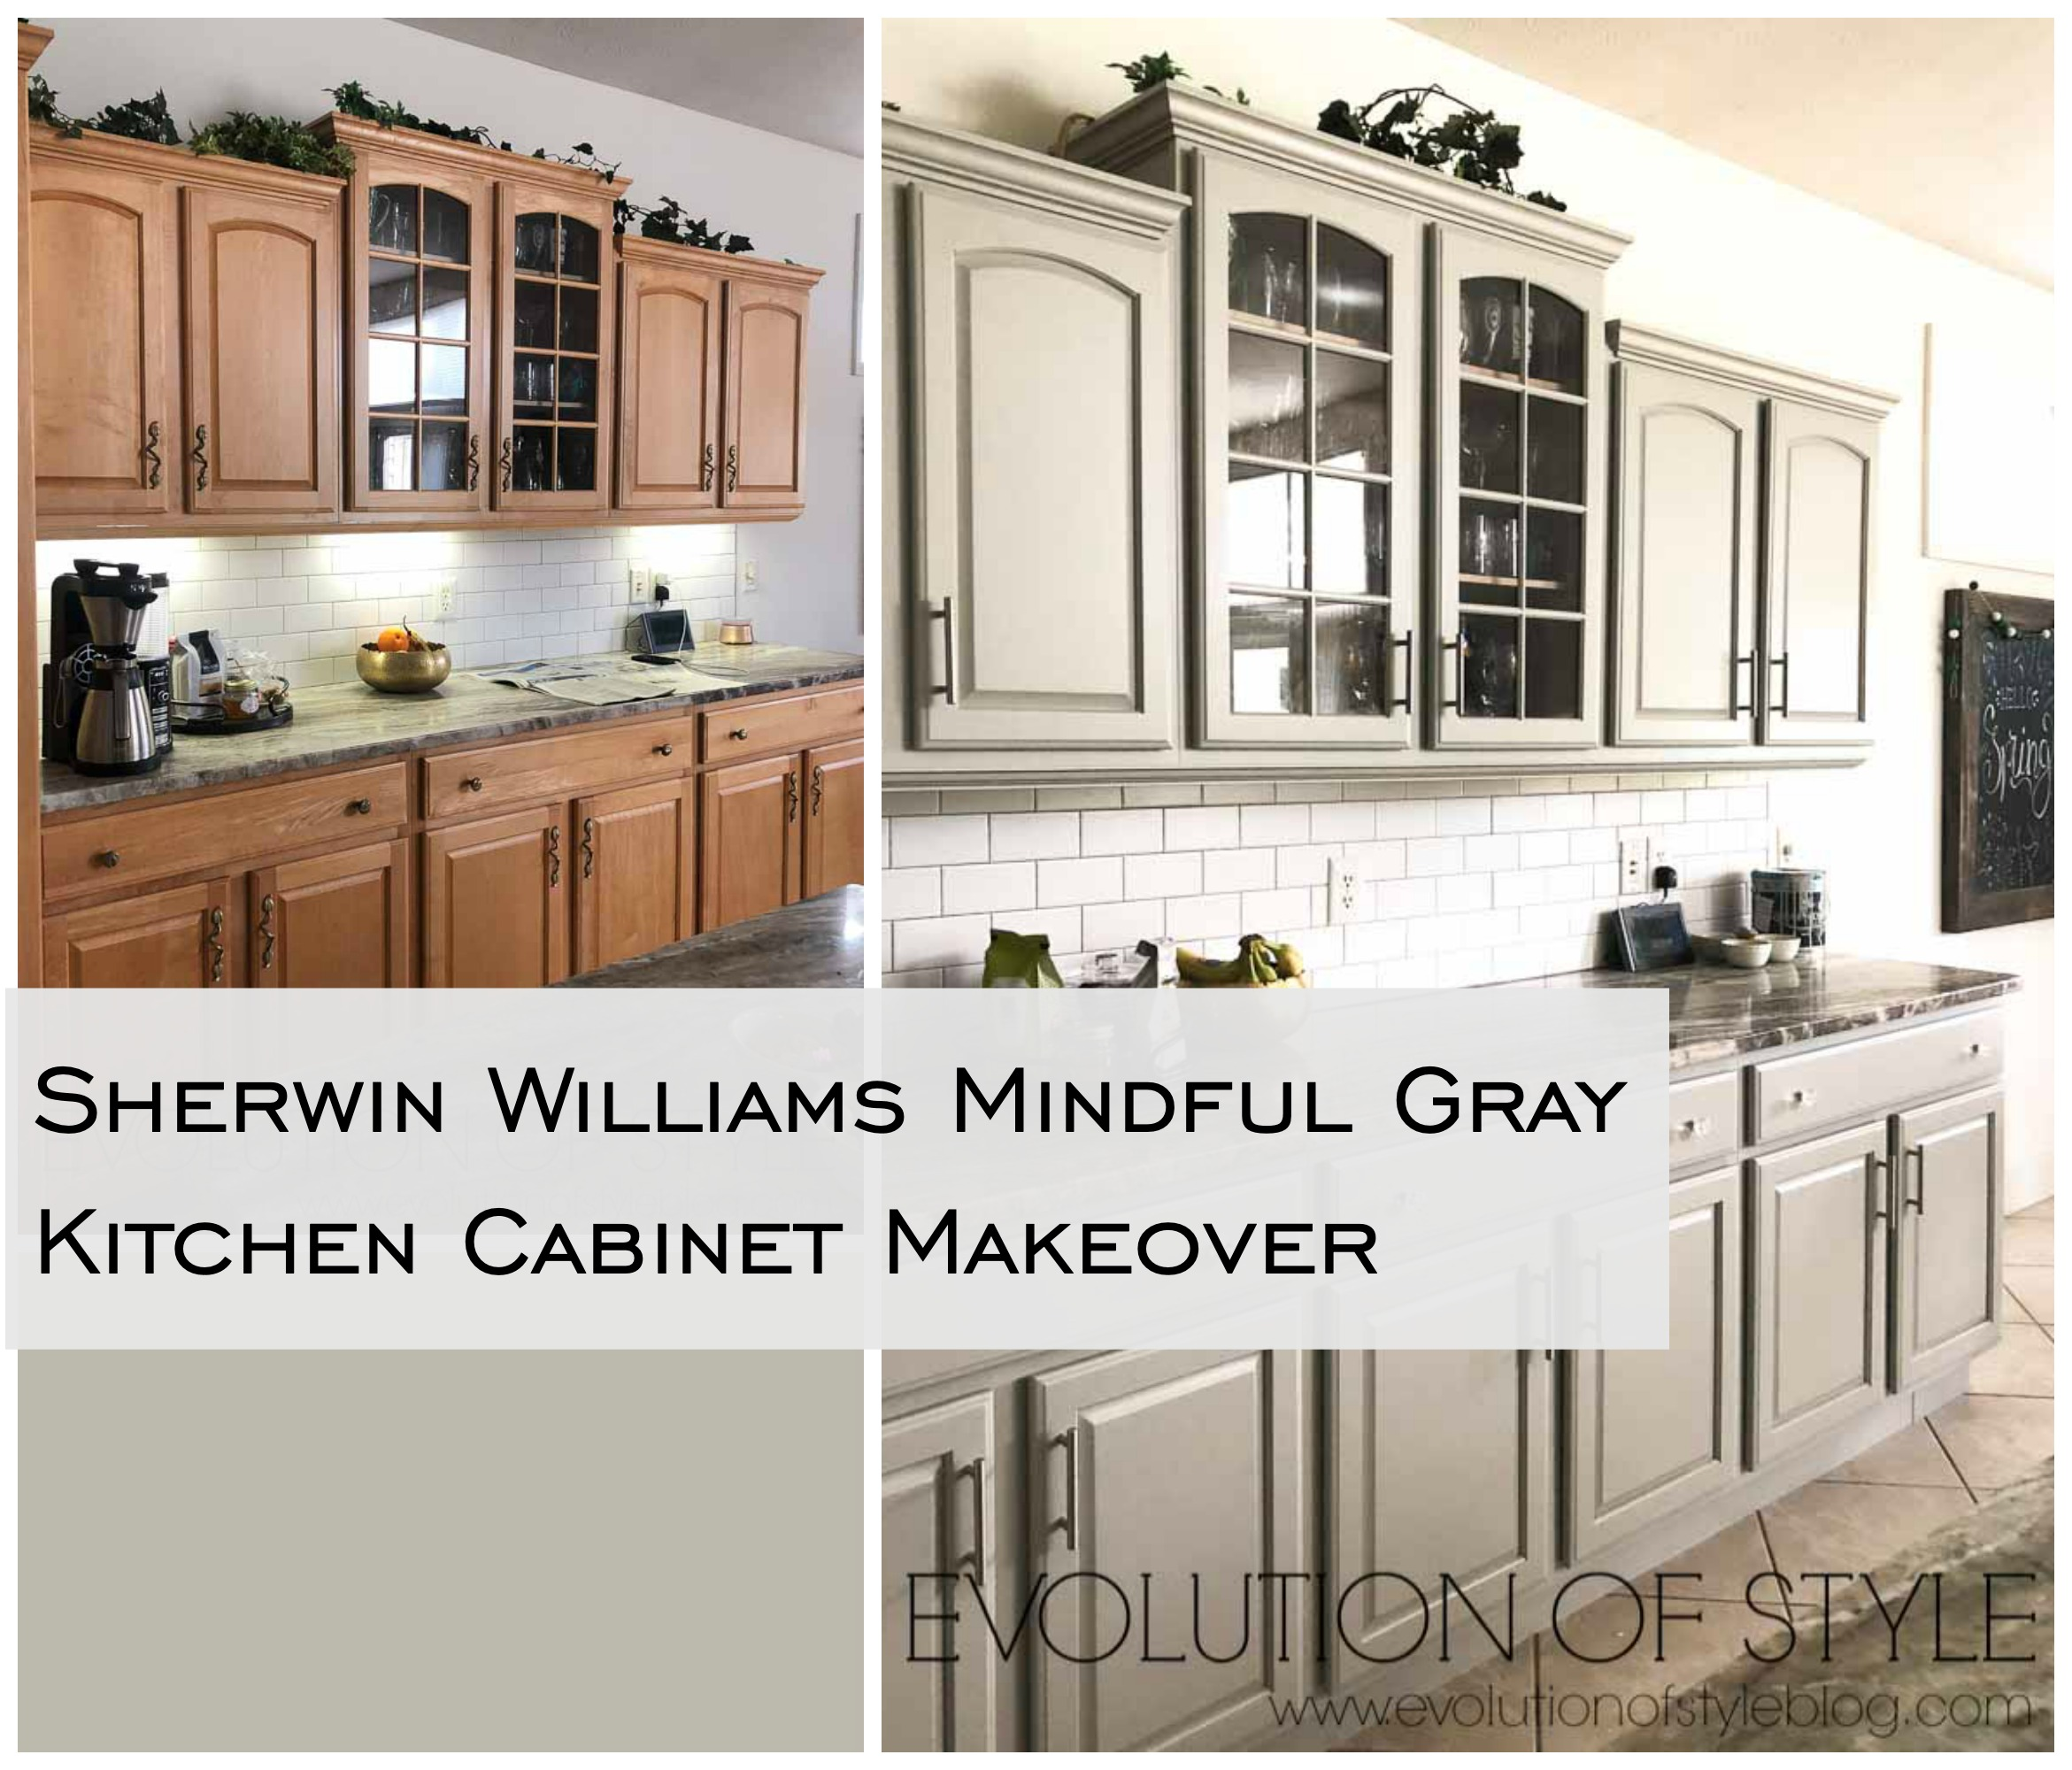 Kitchen Cabinets Victoria Mindful Gray Kitchen Cabinets Evolution Of Style